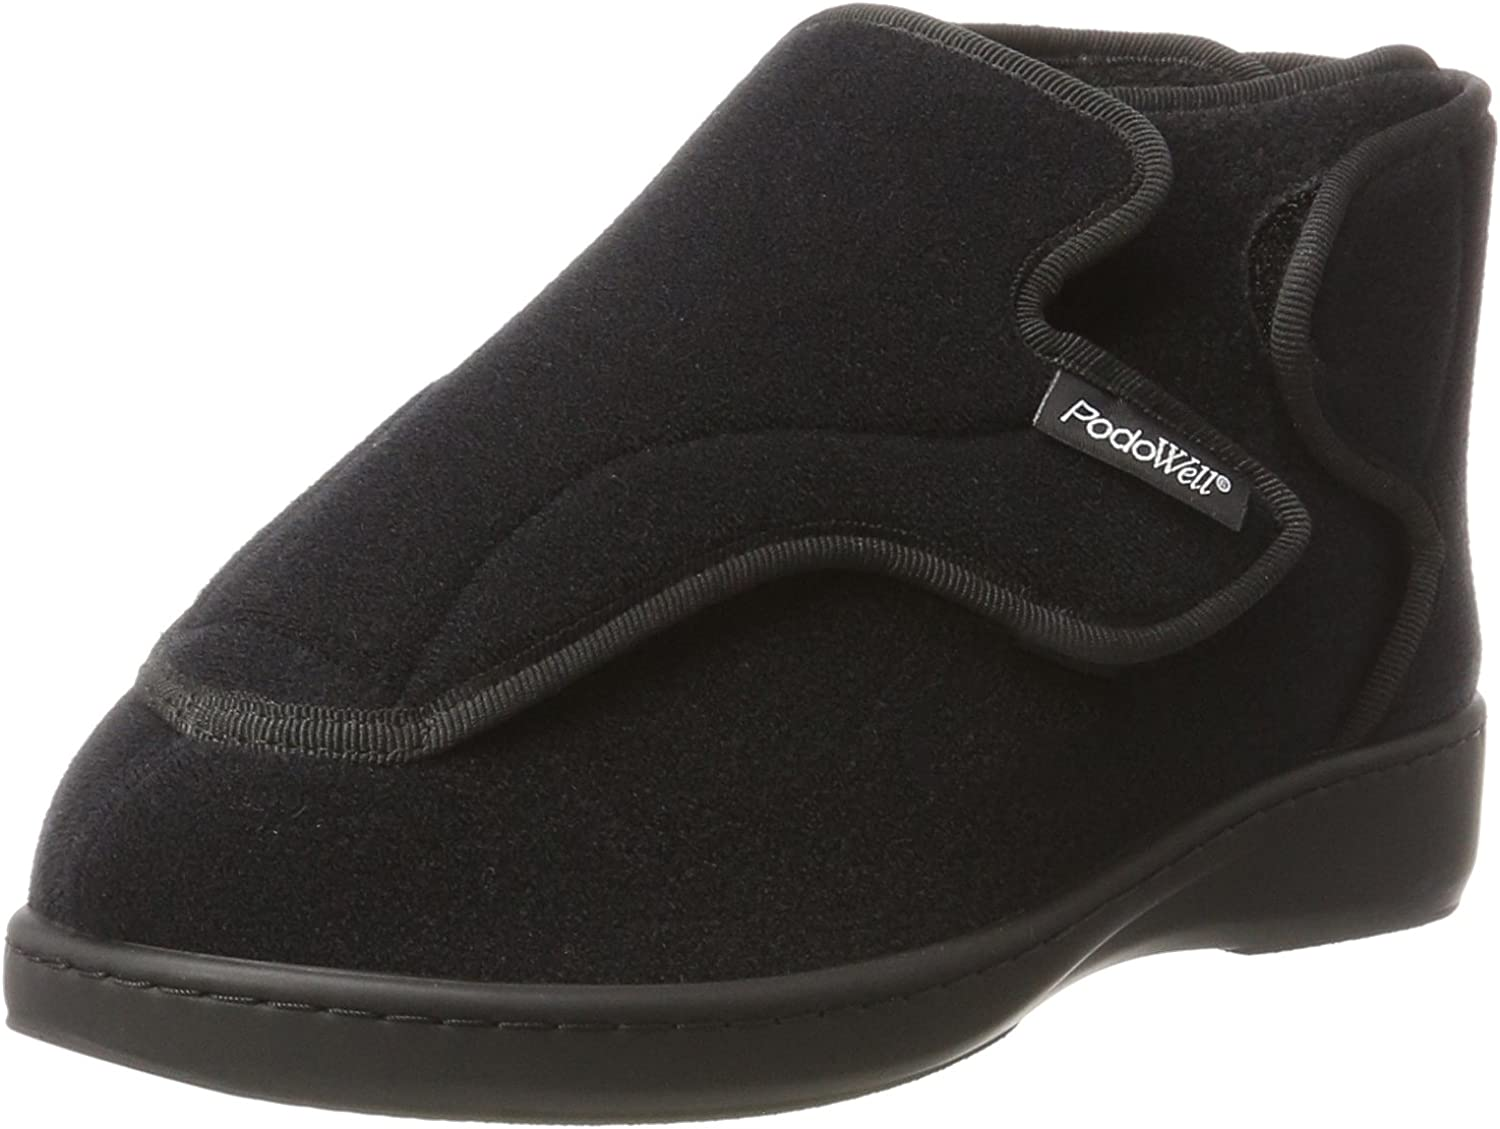 Podowell Men's Low-Top Sneakers In Reservation a popularity